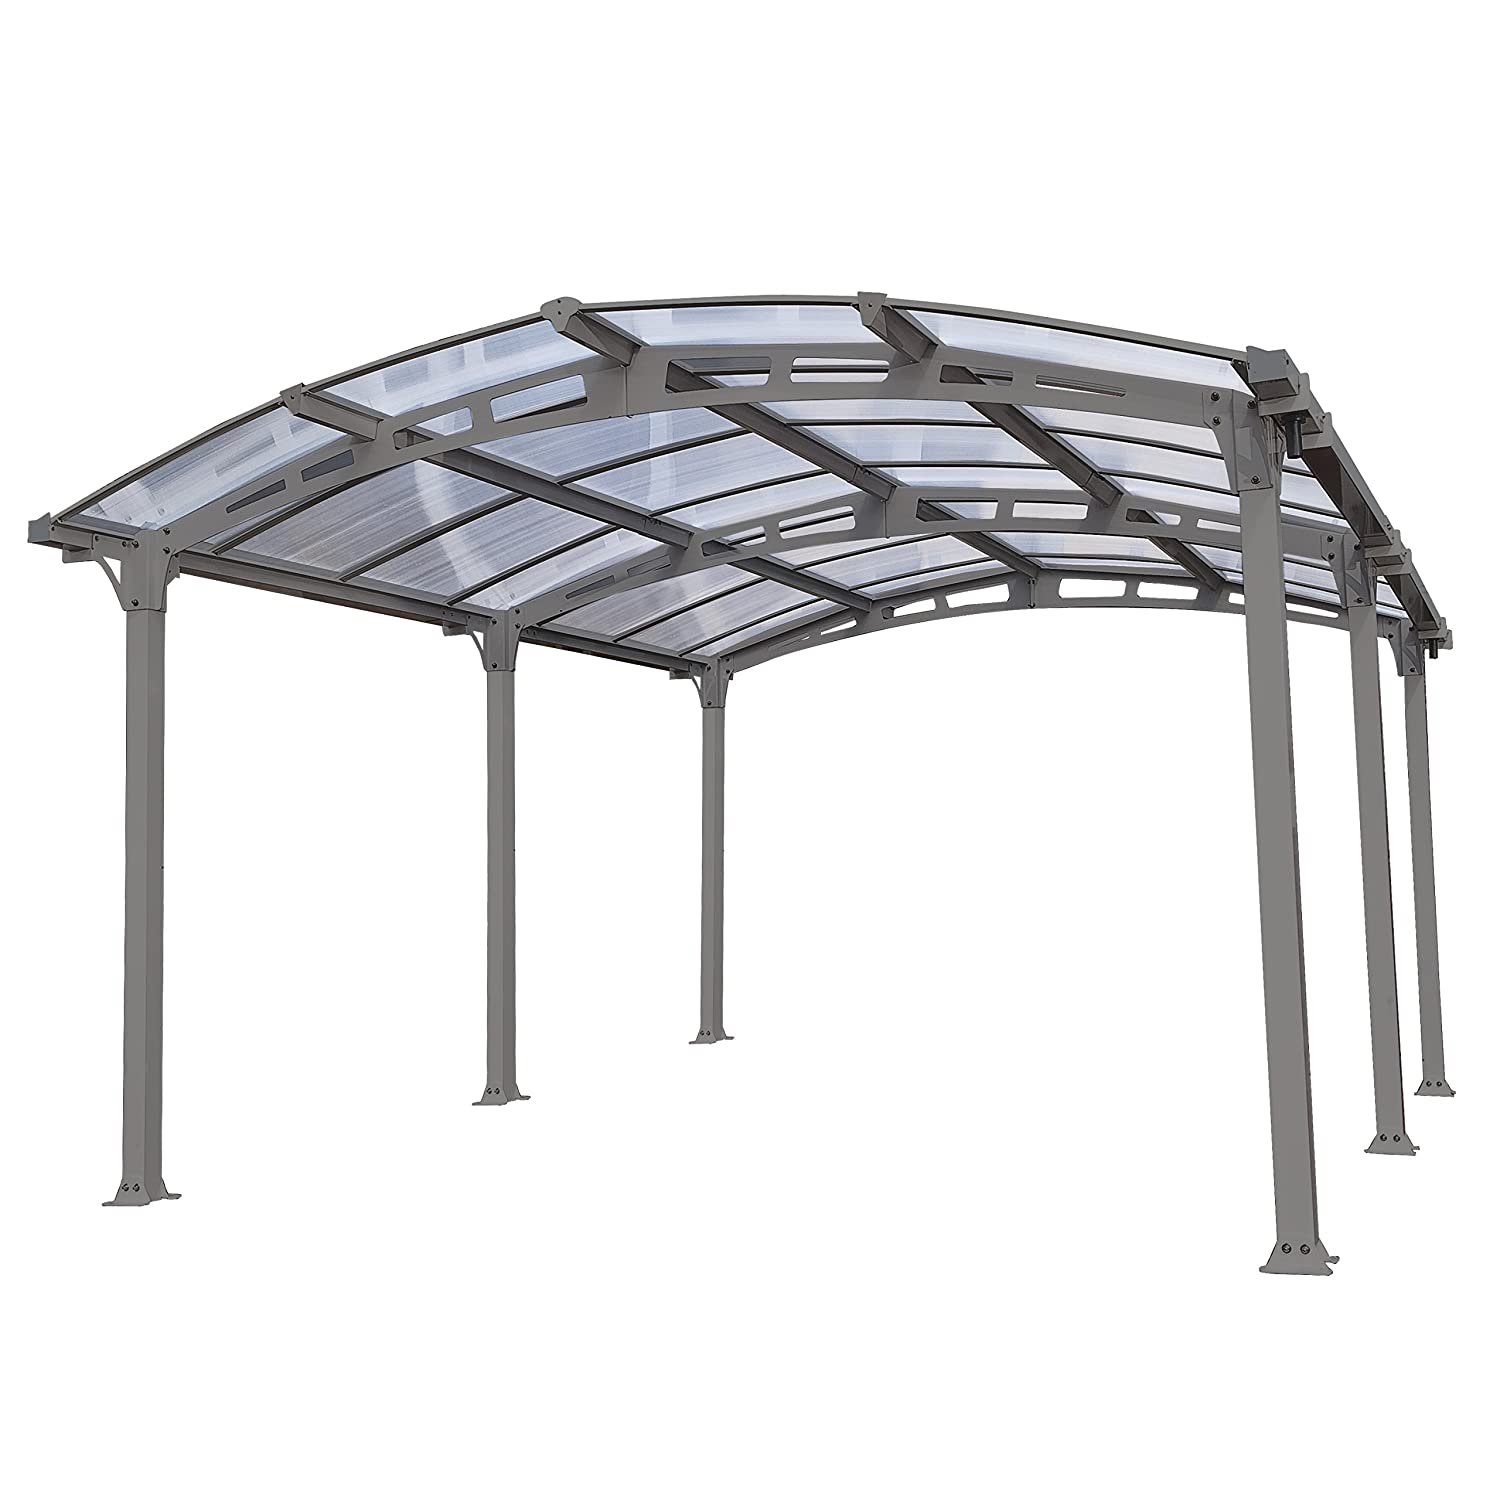 Palram Verona 5000 Carport and Patio Cover, 16' x 10' x 7' 16' x 10' x 7' HG9135